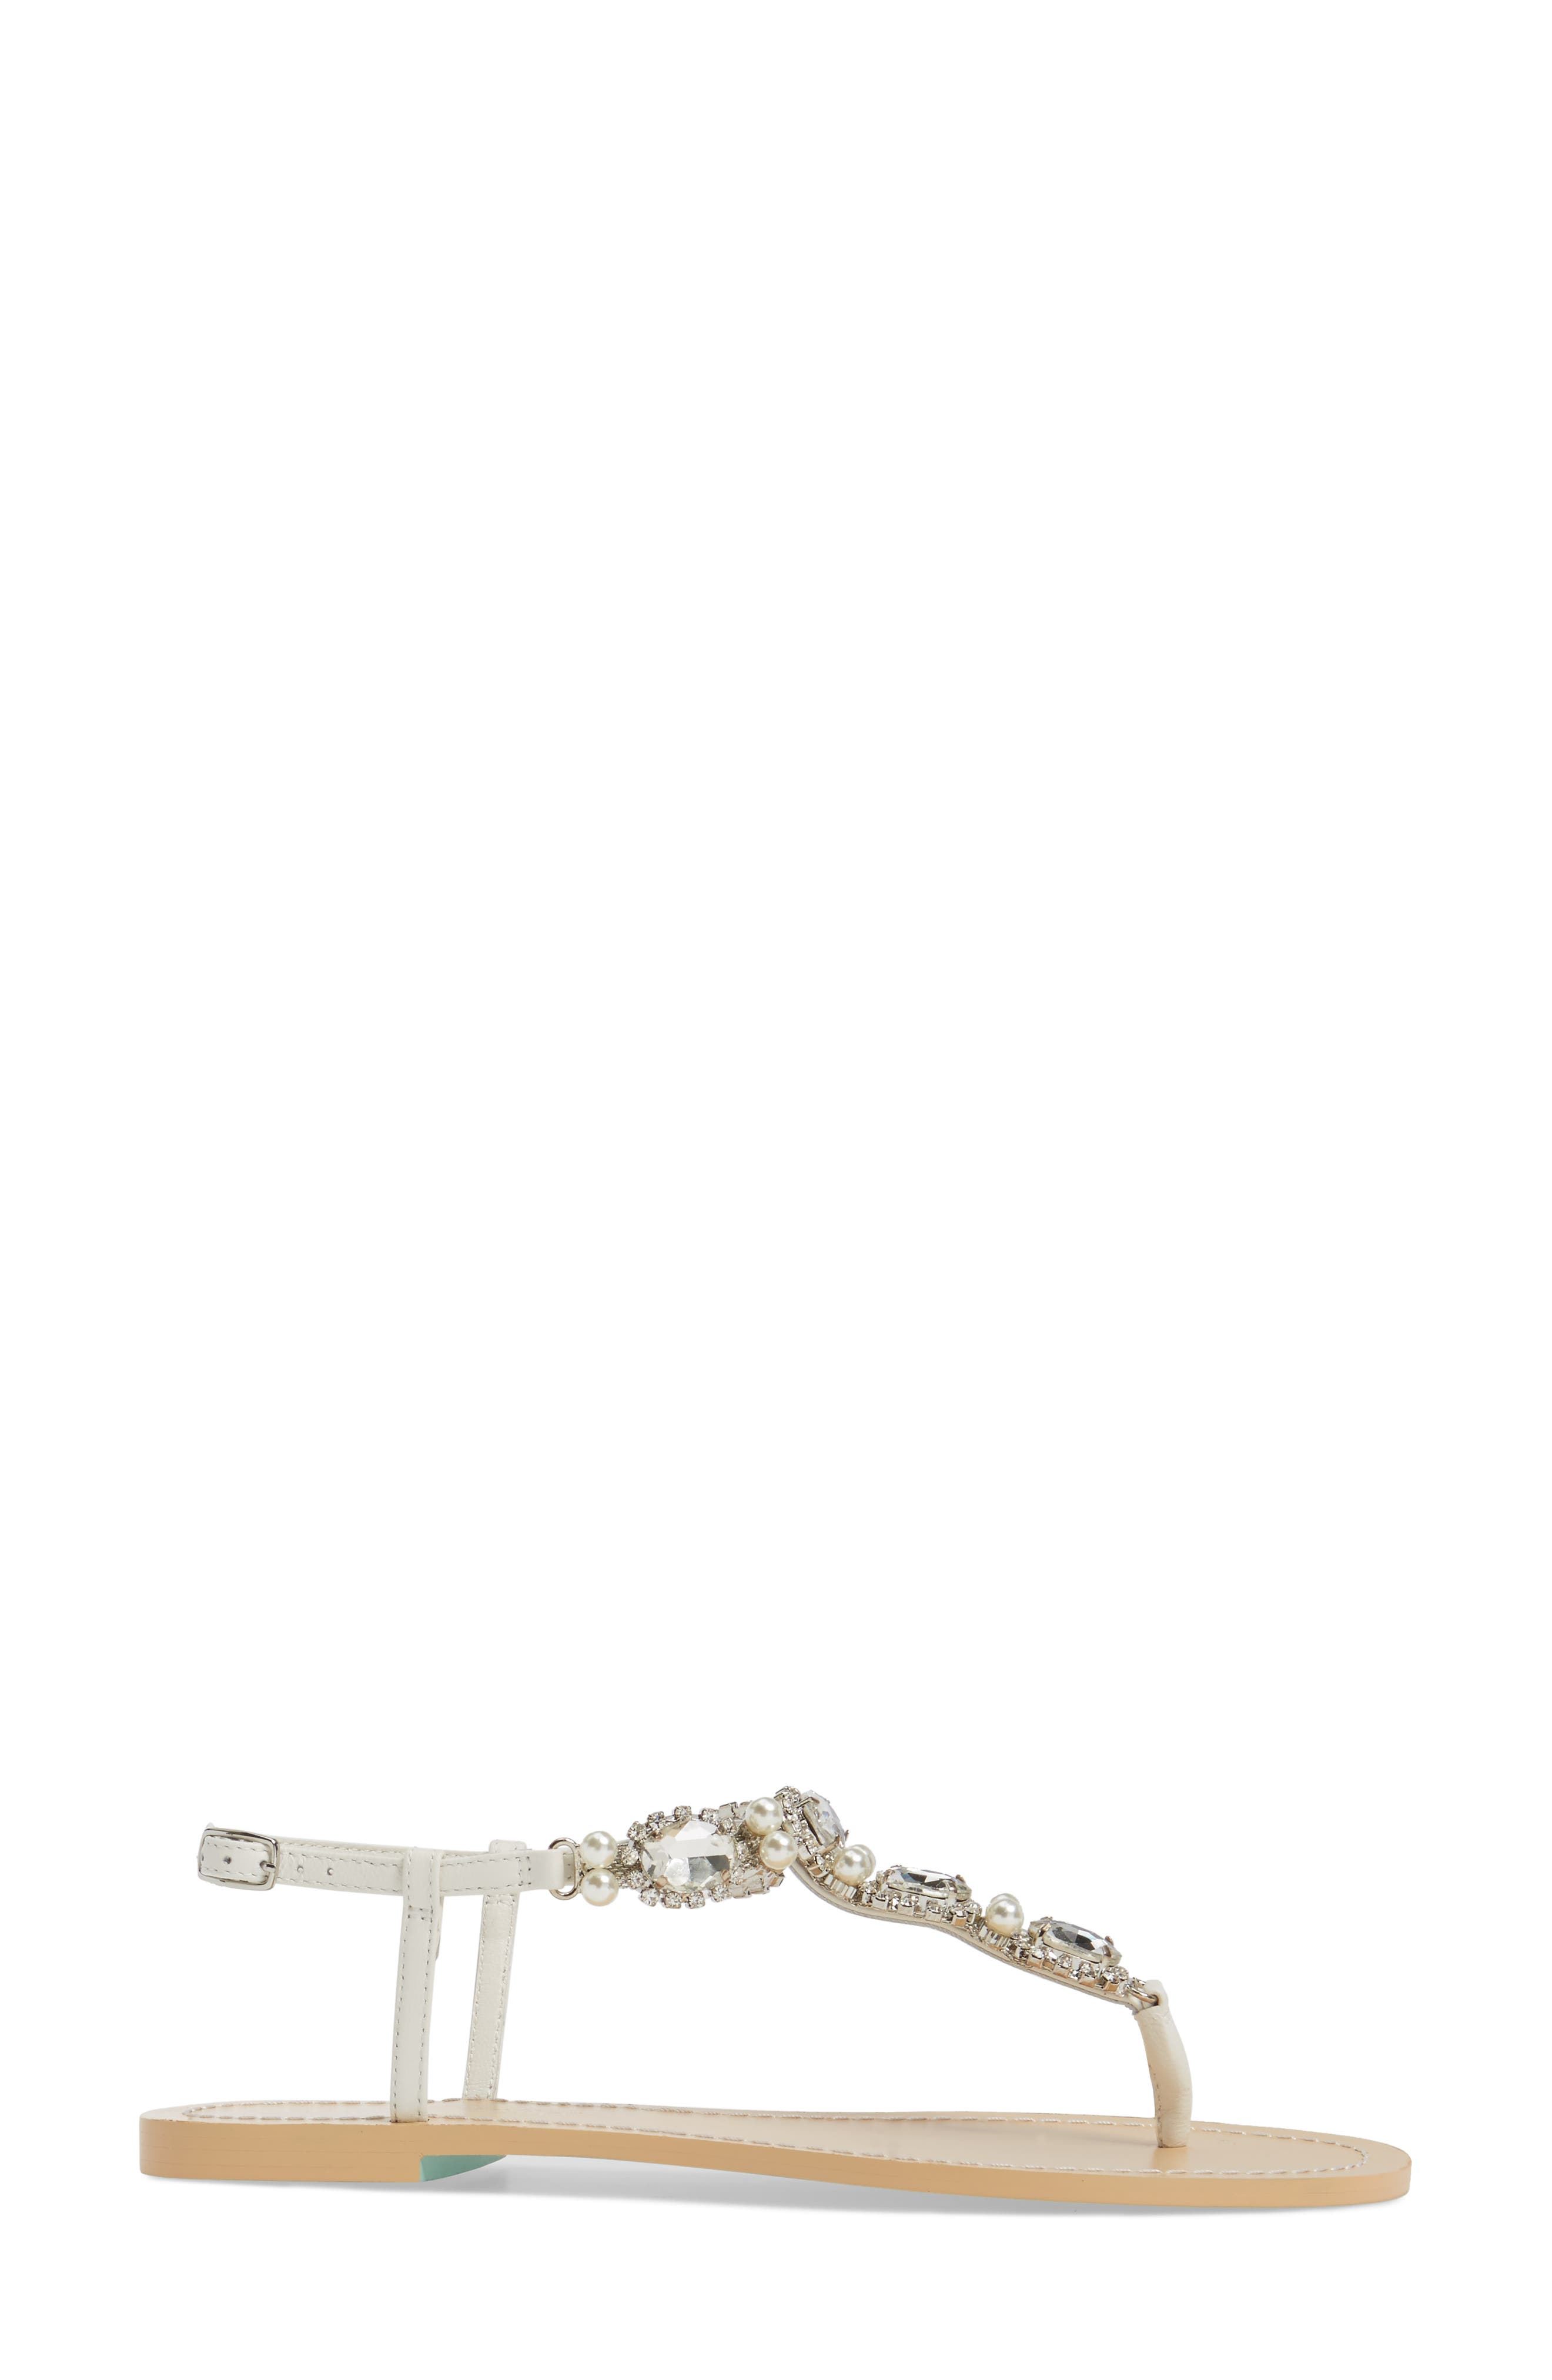 Hera Embellished T-Strap Sandal,                             Alternate thumbnail 3, color,                             OFF WHITE LEATHER